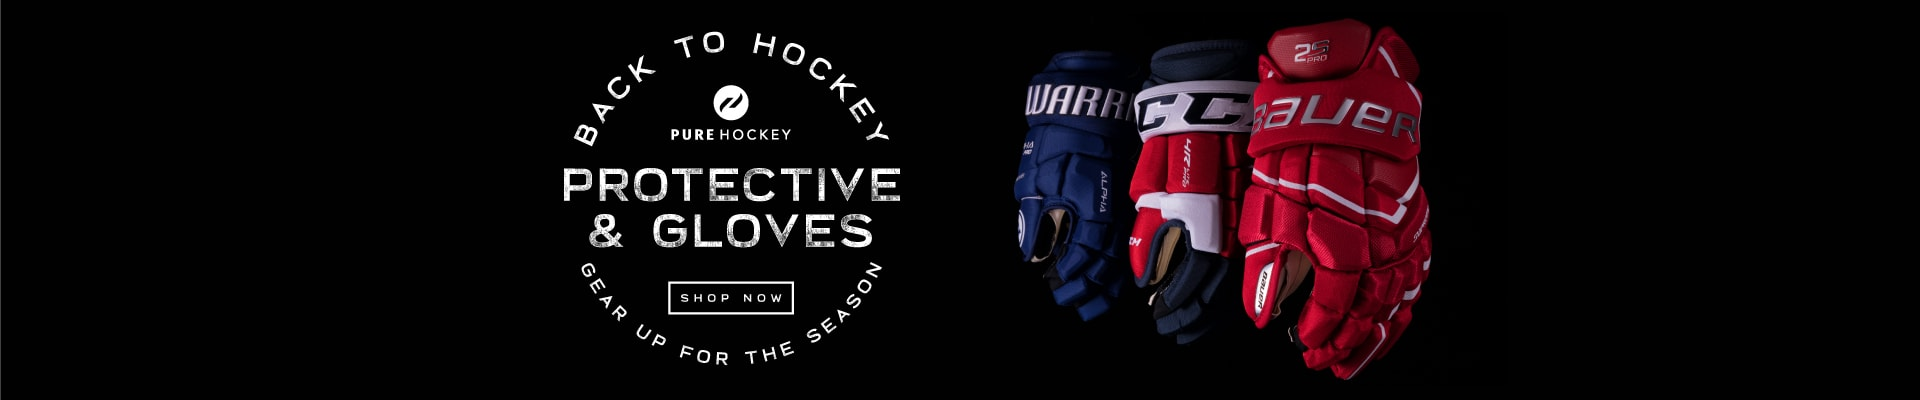 Back To Hockey - Gloves And Protective